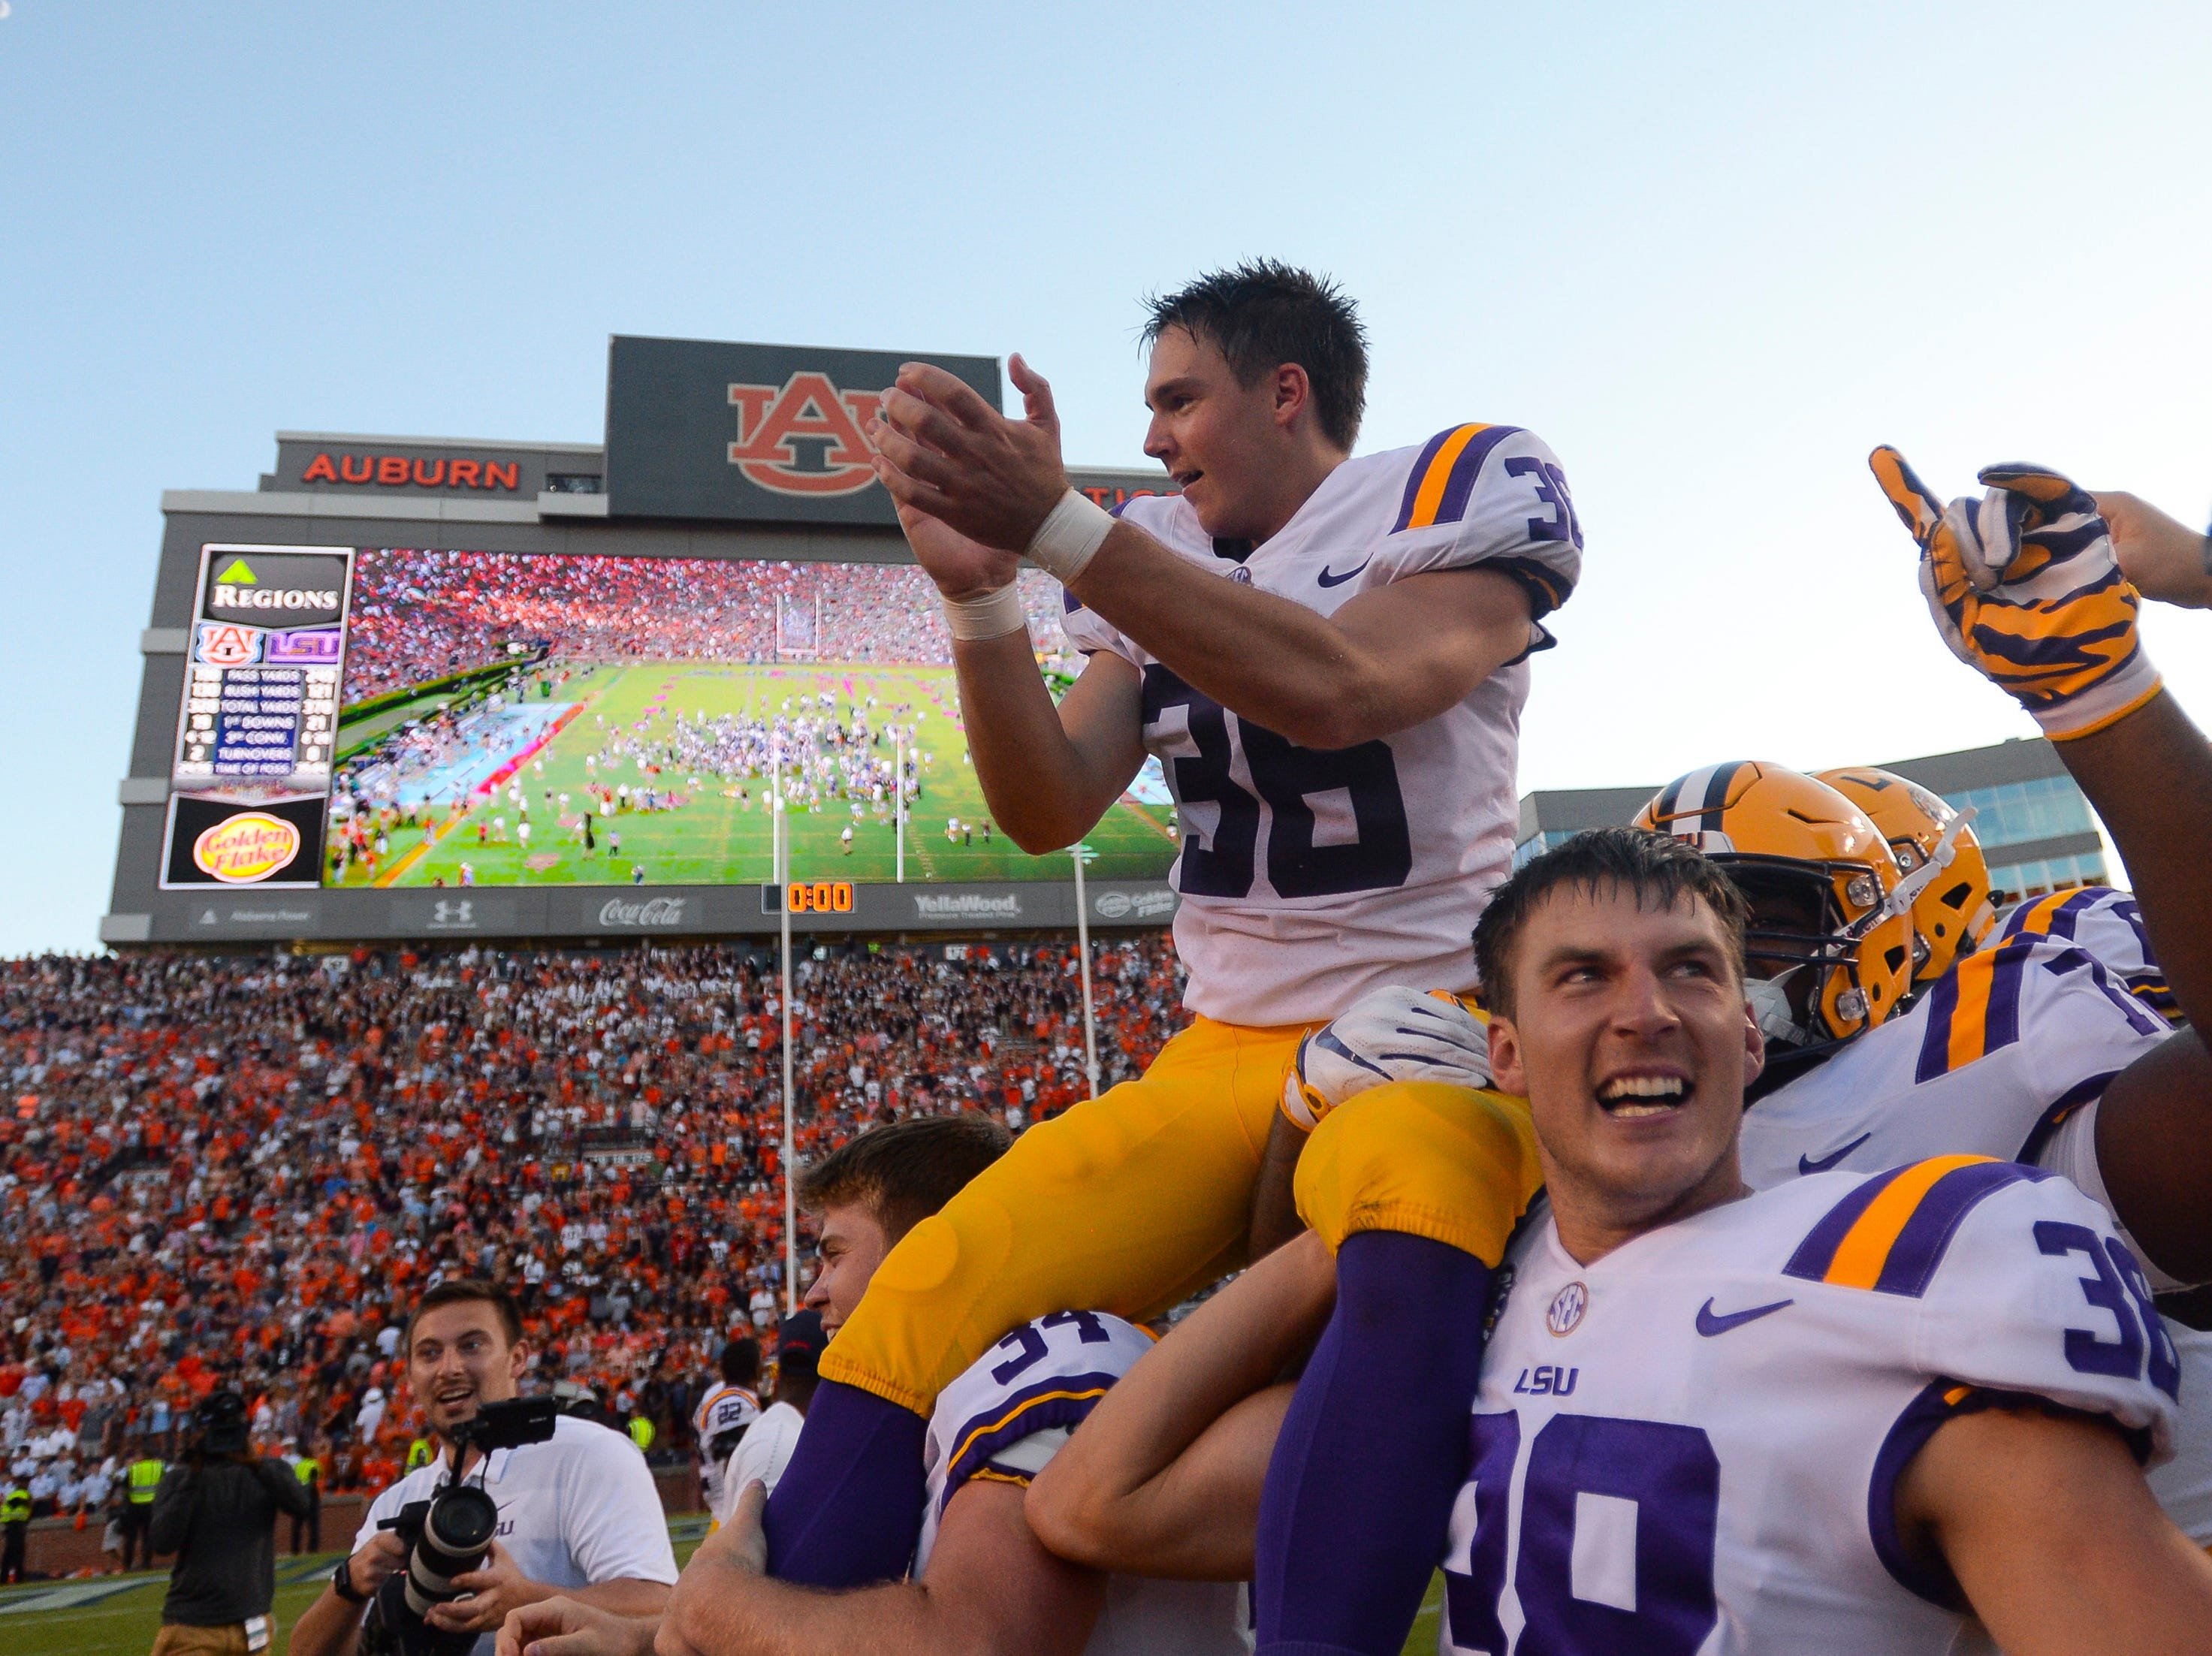 Sept. 15: LSU Tigers kicker Cole Tracy celebrates after kicking the game-winning field goal to defeat the Auburn Tigers 22-21 at Jordan-Hare Stadium.